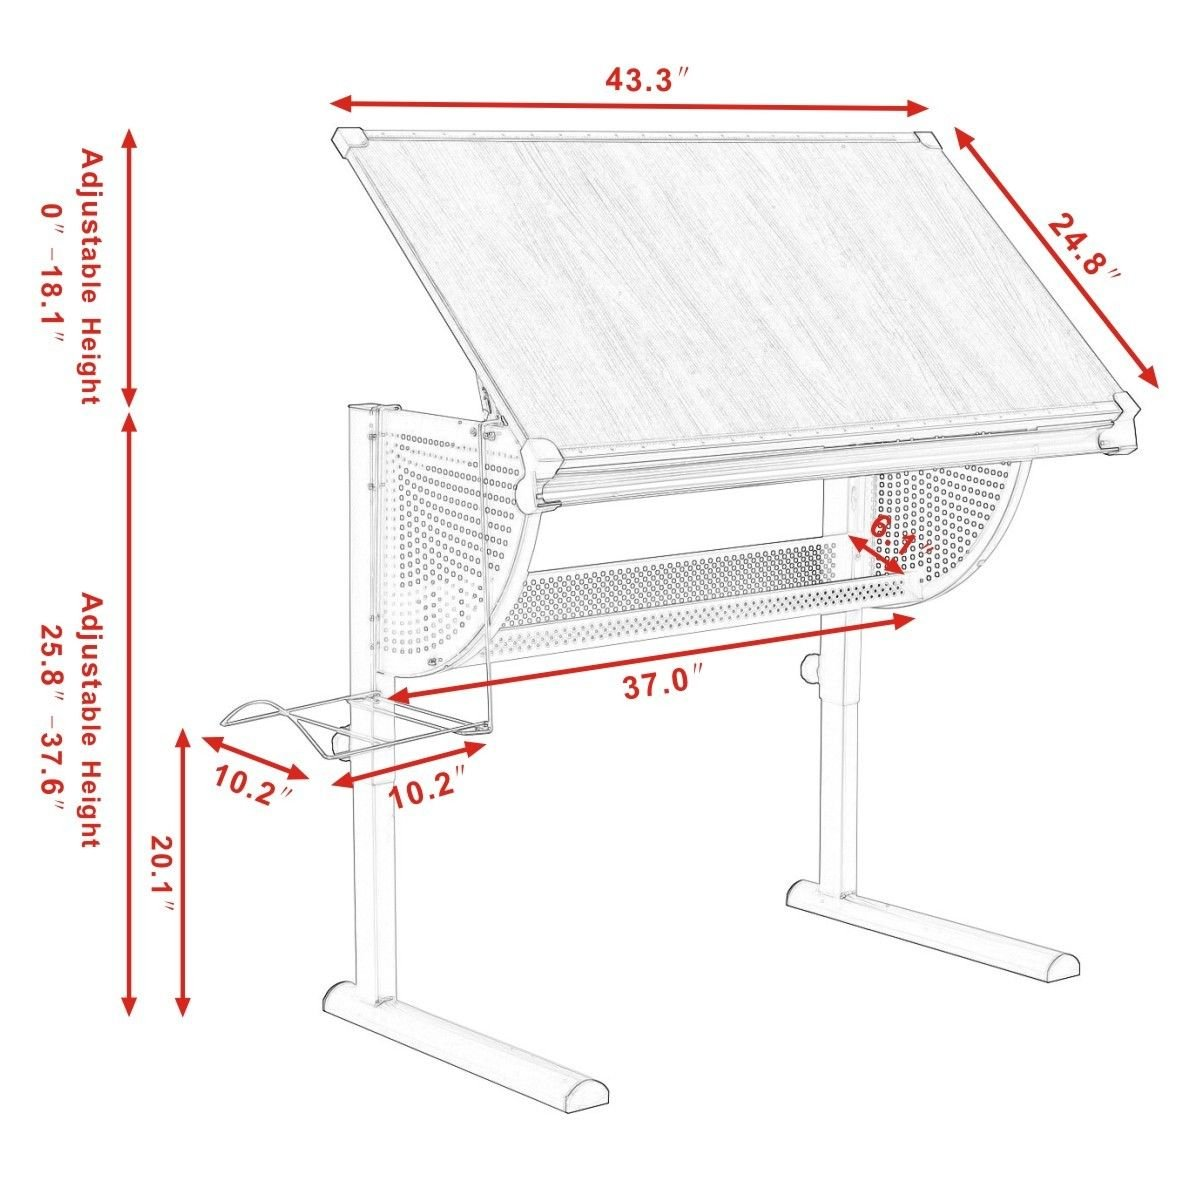 Drafting table dimensions images for Standard blueprint size